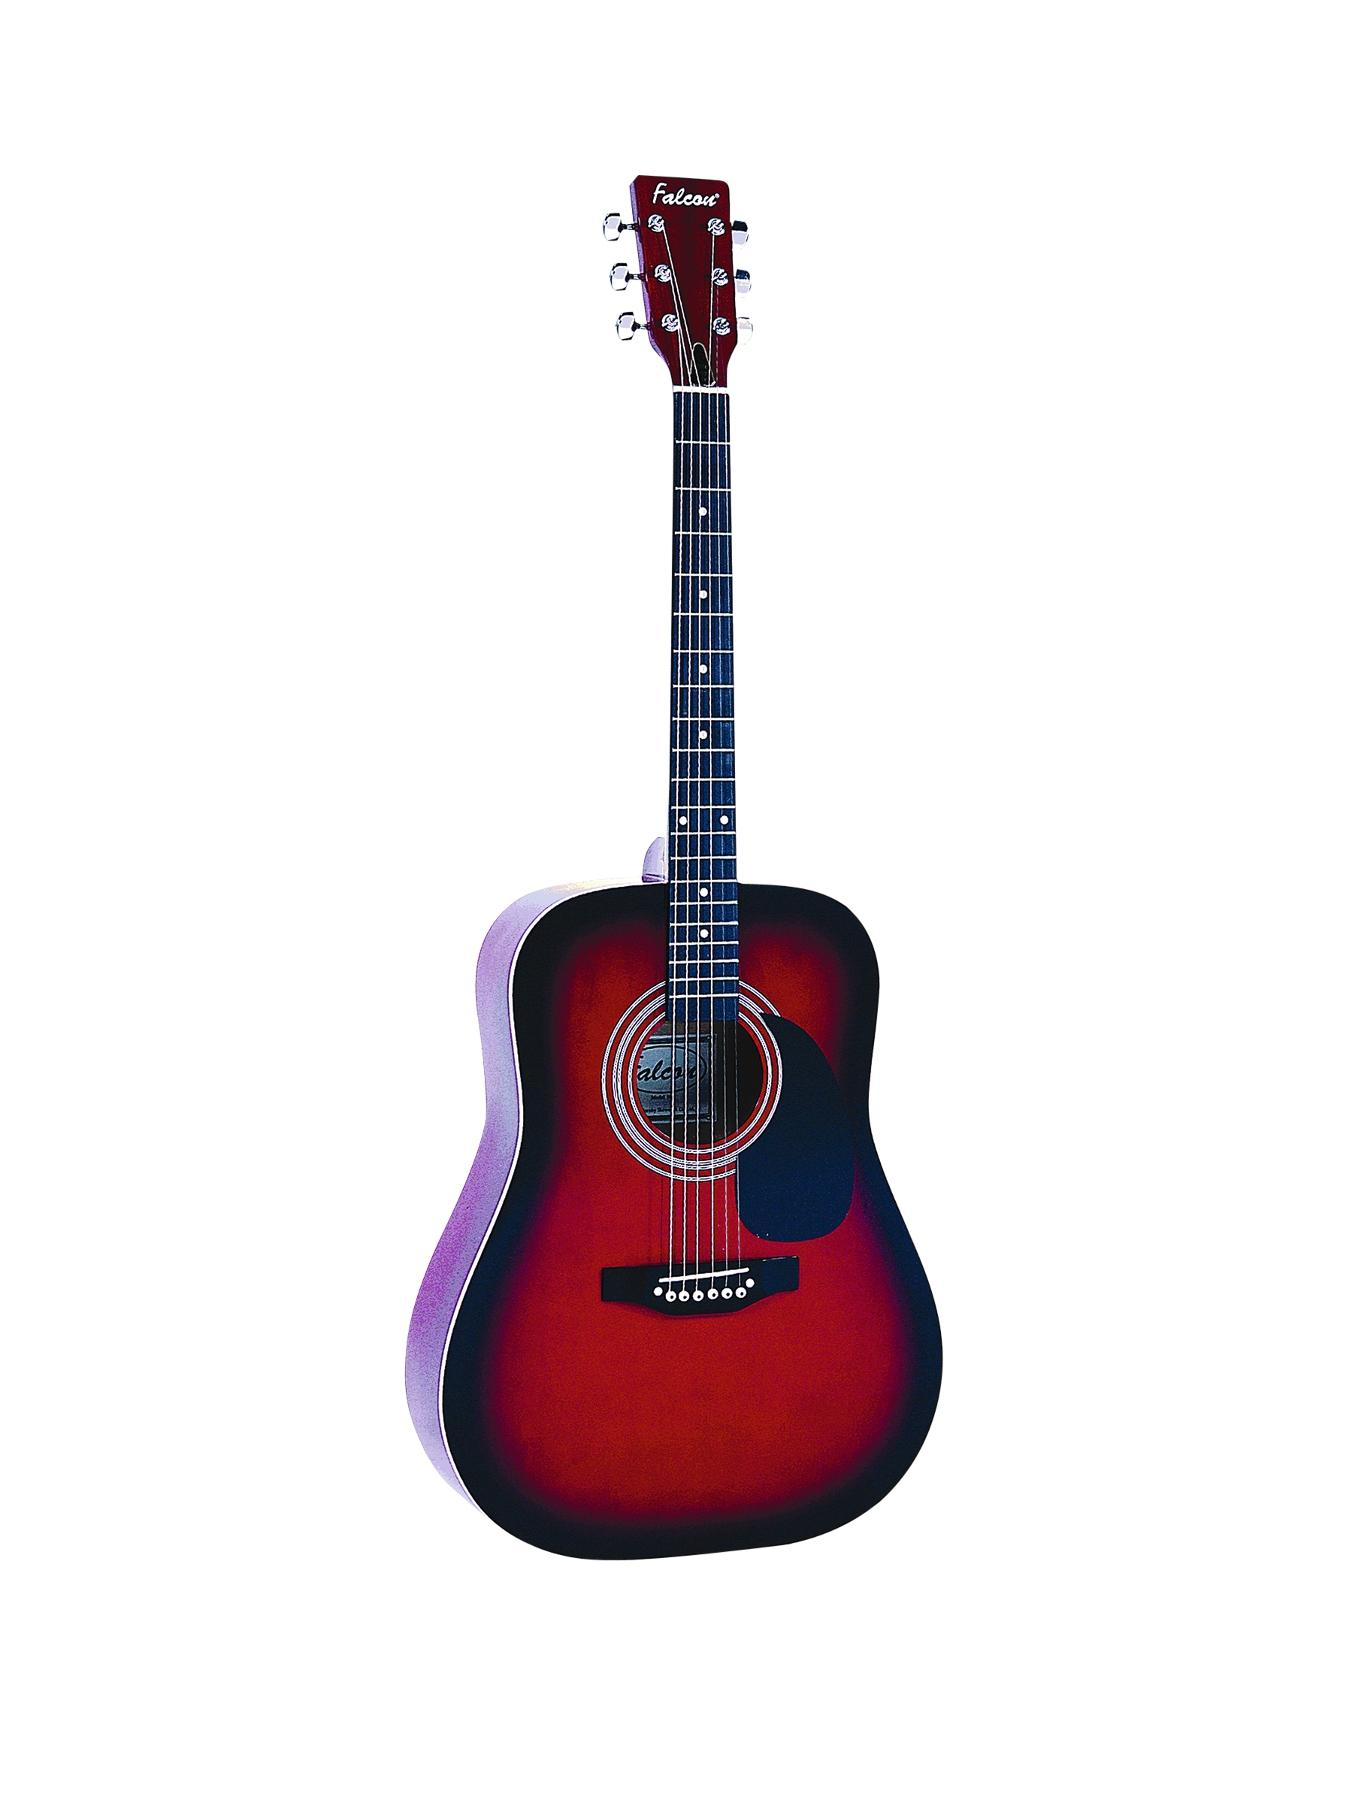 FG100 Dreadnought Acoustic Guitar Musical Instrument - Redburst